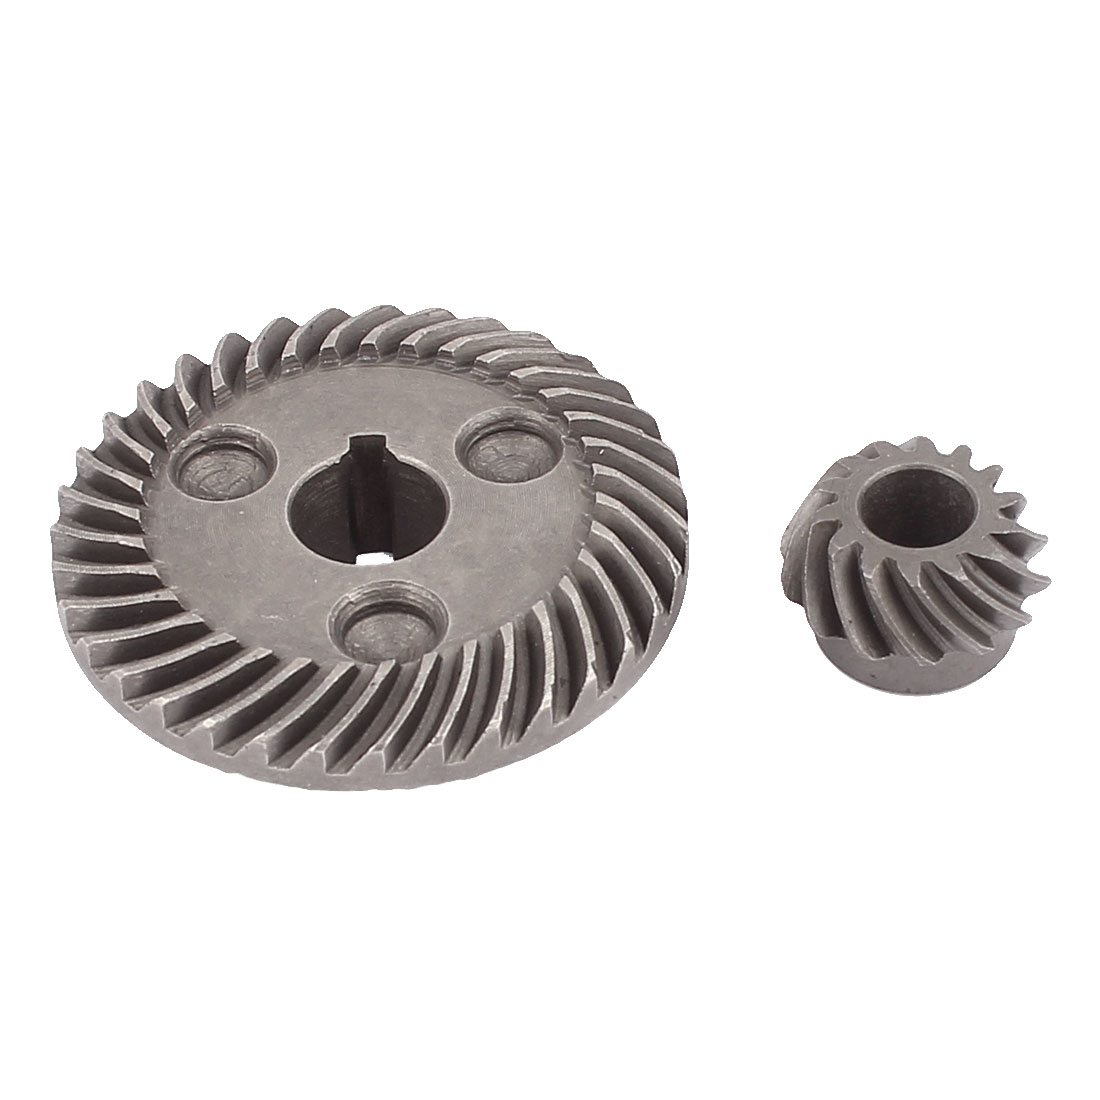 Replacement Metal Electric Angle Grinder Spiral Bevel Gear Set for Hitachi 100